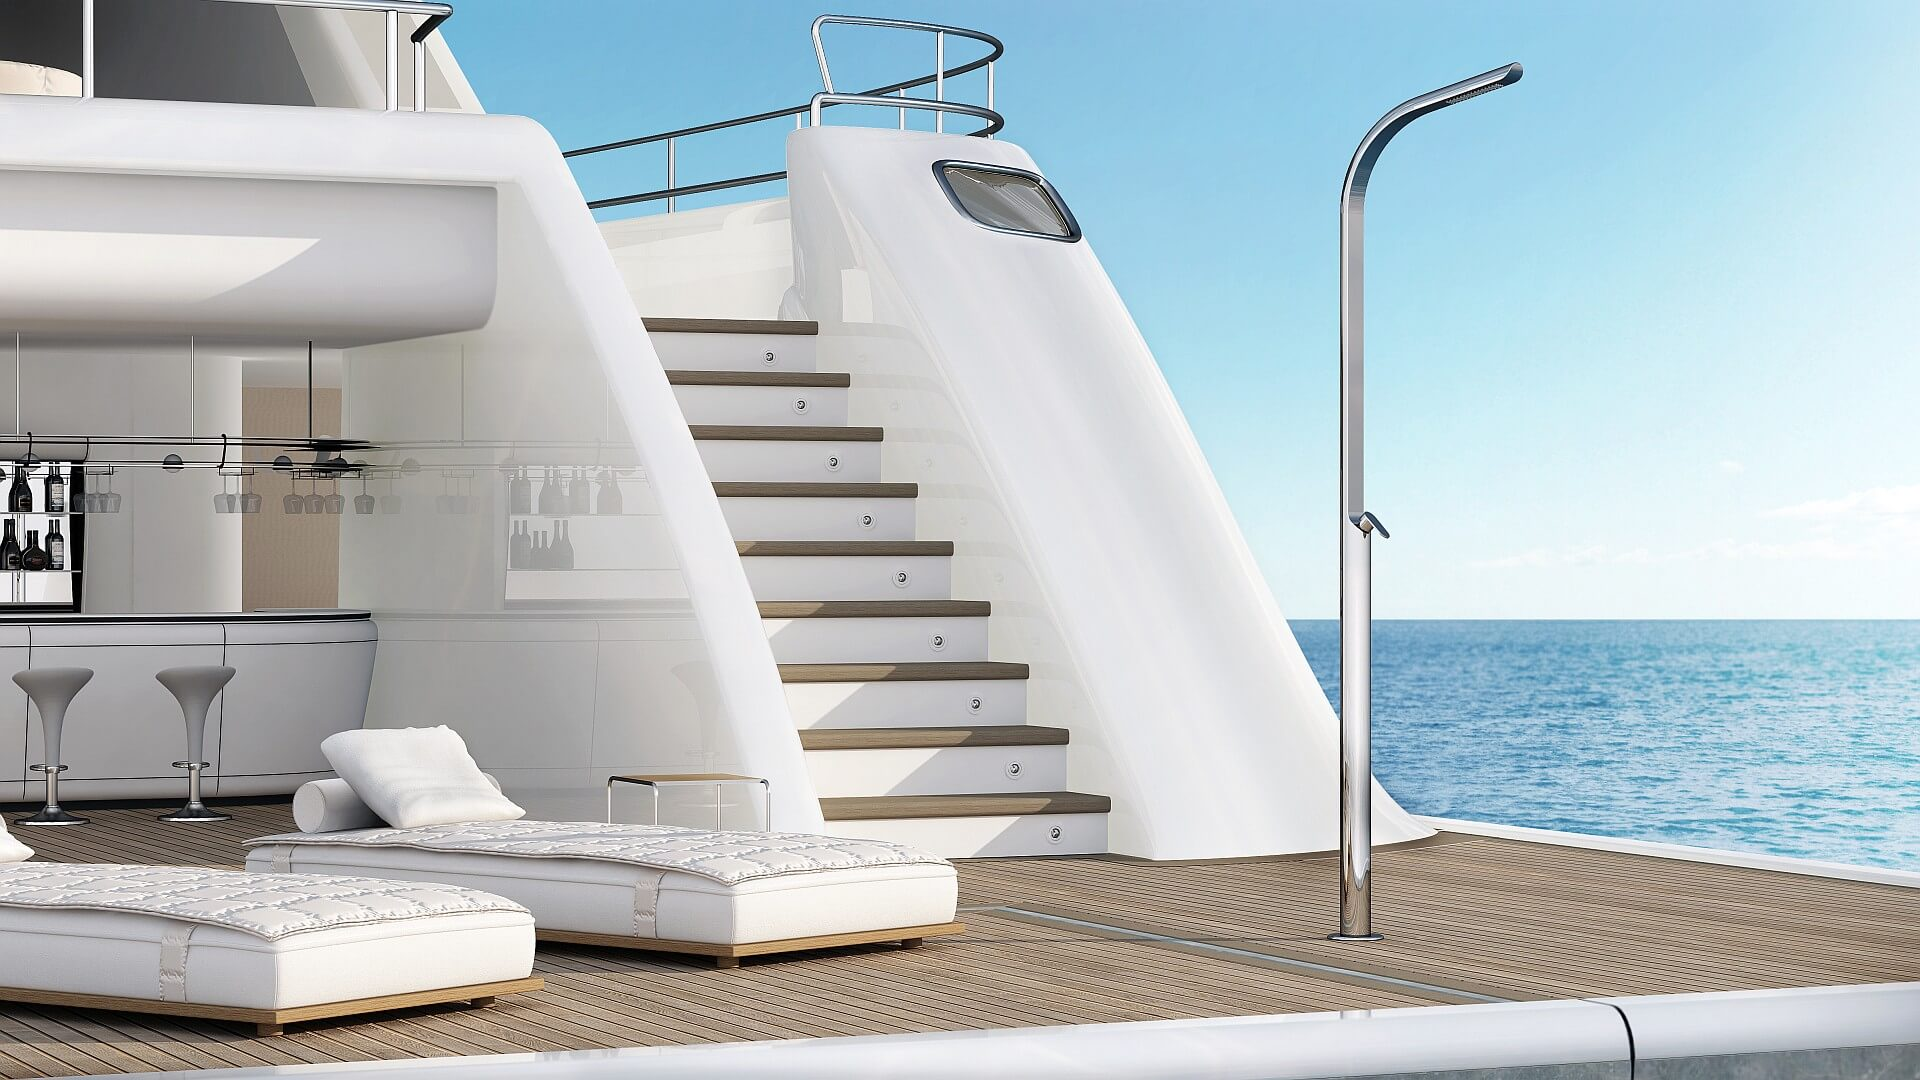 Picture Outdoor shower, pool, garden - Dream Yacht Inoxstyle